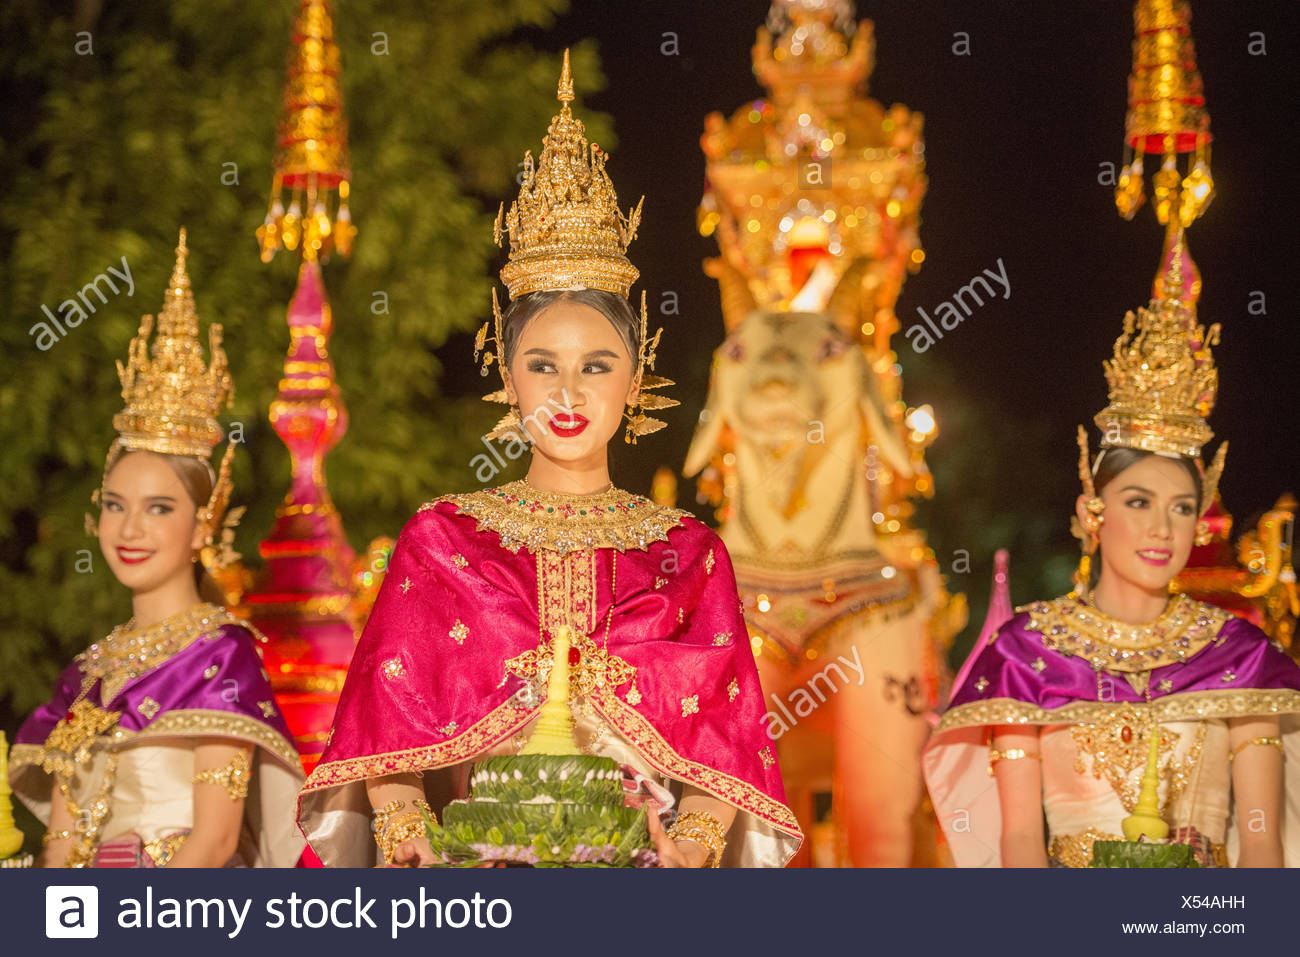 ASIEN THAILAND CHIANG LOY KRATHONG FESTIVAL Stockfoto